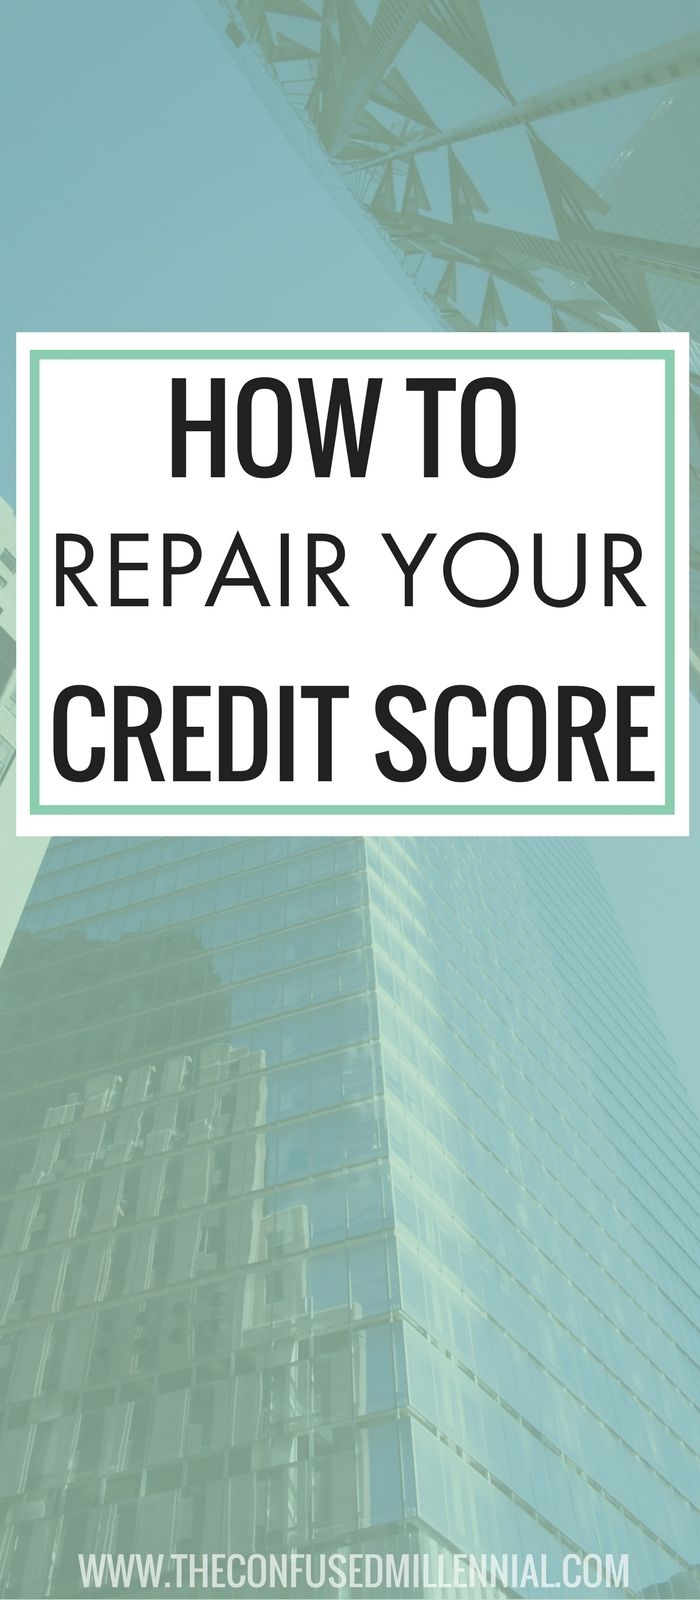 Millennials this is how to start repairing your credit scores repair credit score quickly repair credit score fast credit score repair credit score ccuart Image collections